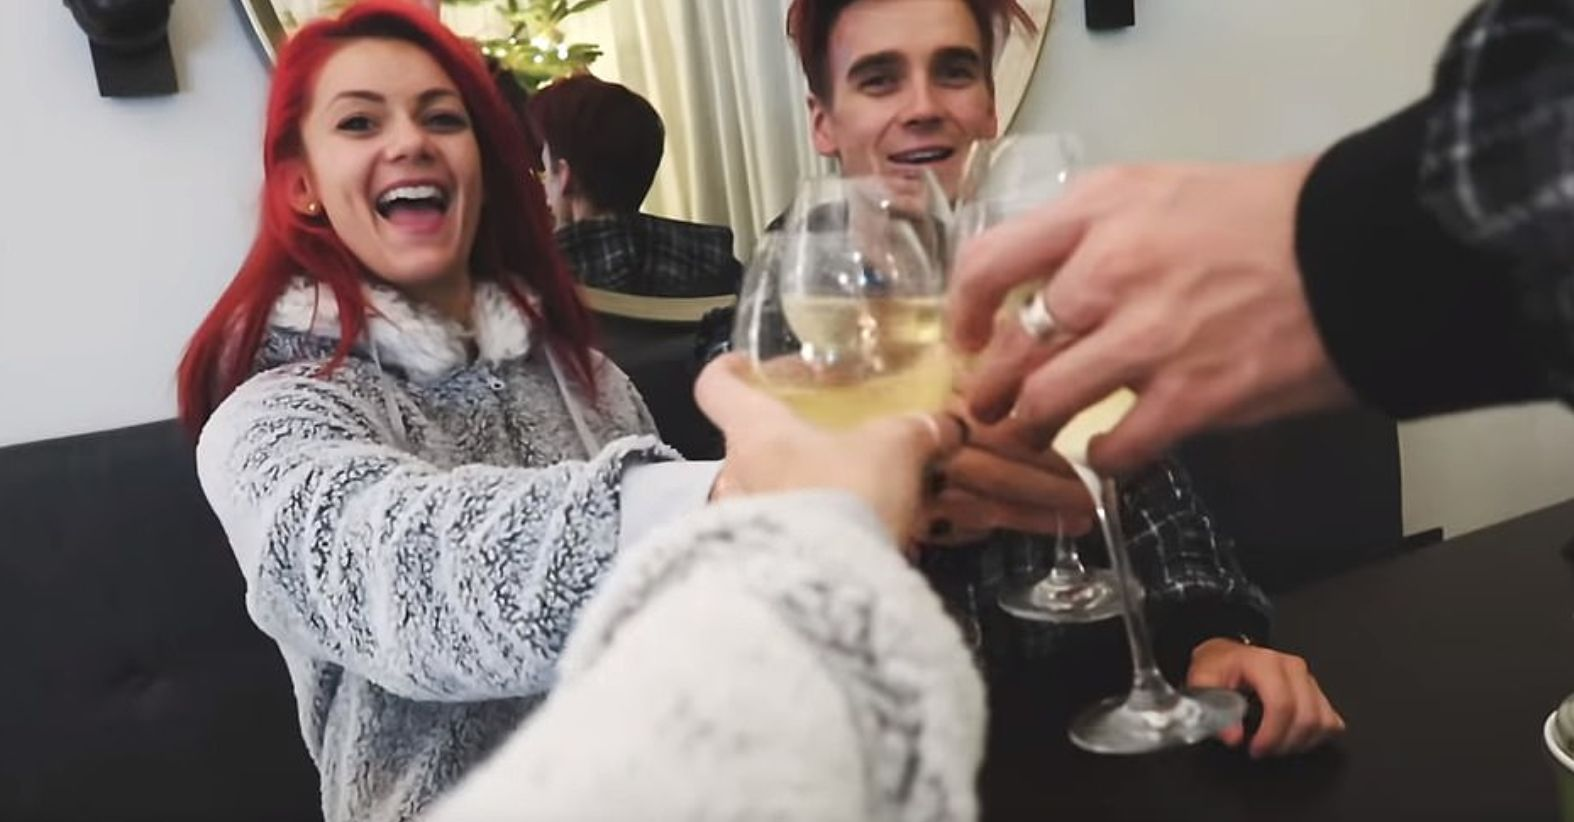 Joe Sugg and Dianne Buswell enjoy luxury romantic getaway after Strictly finale